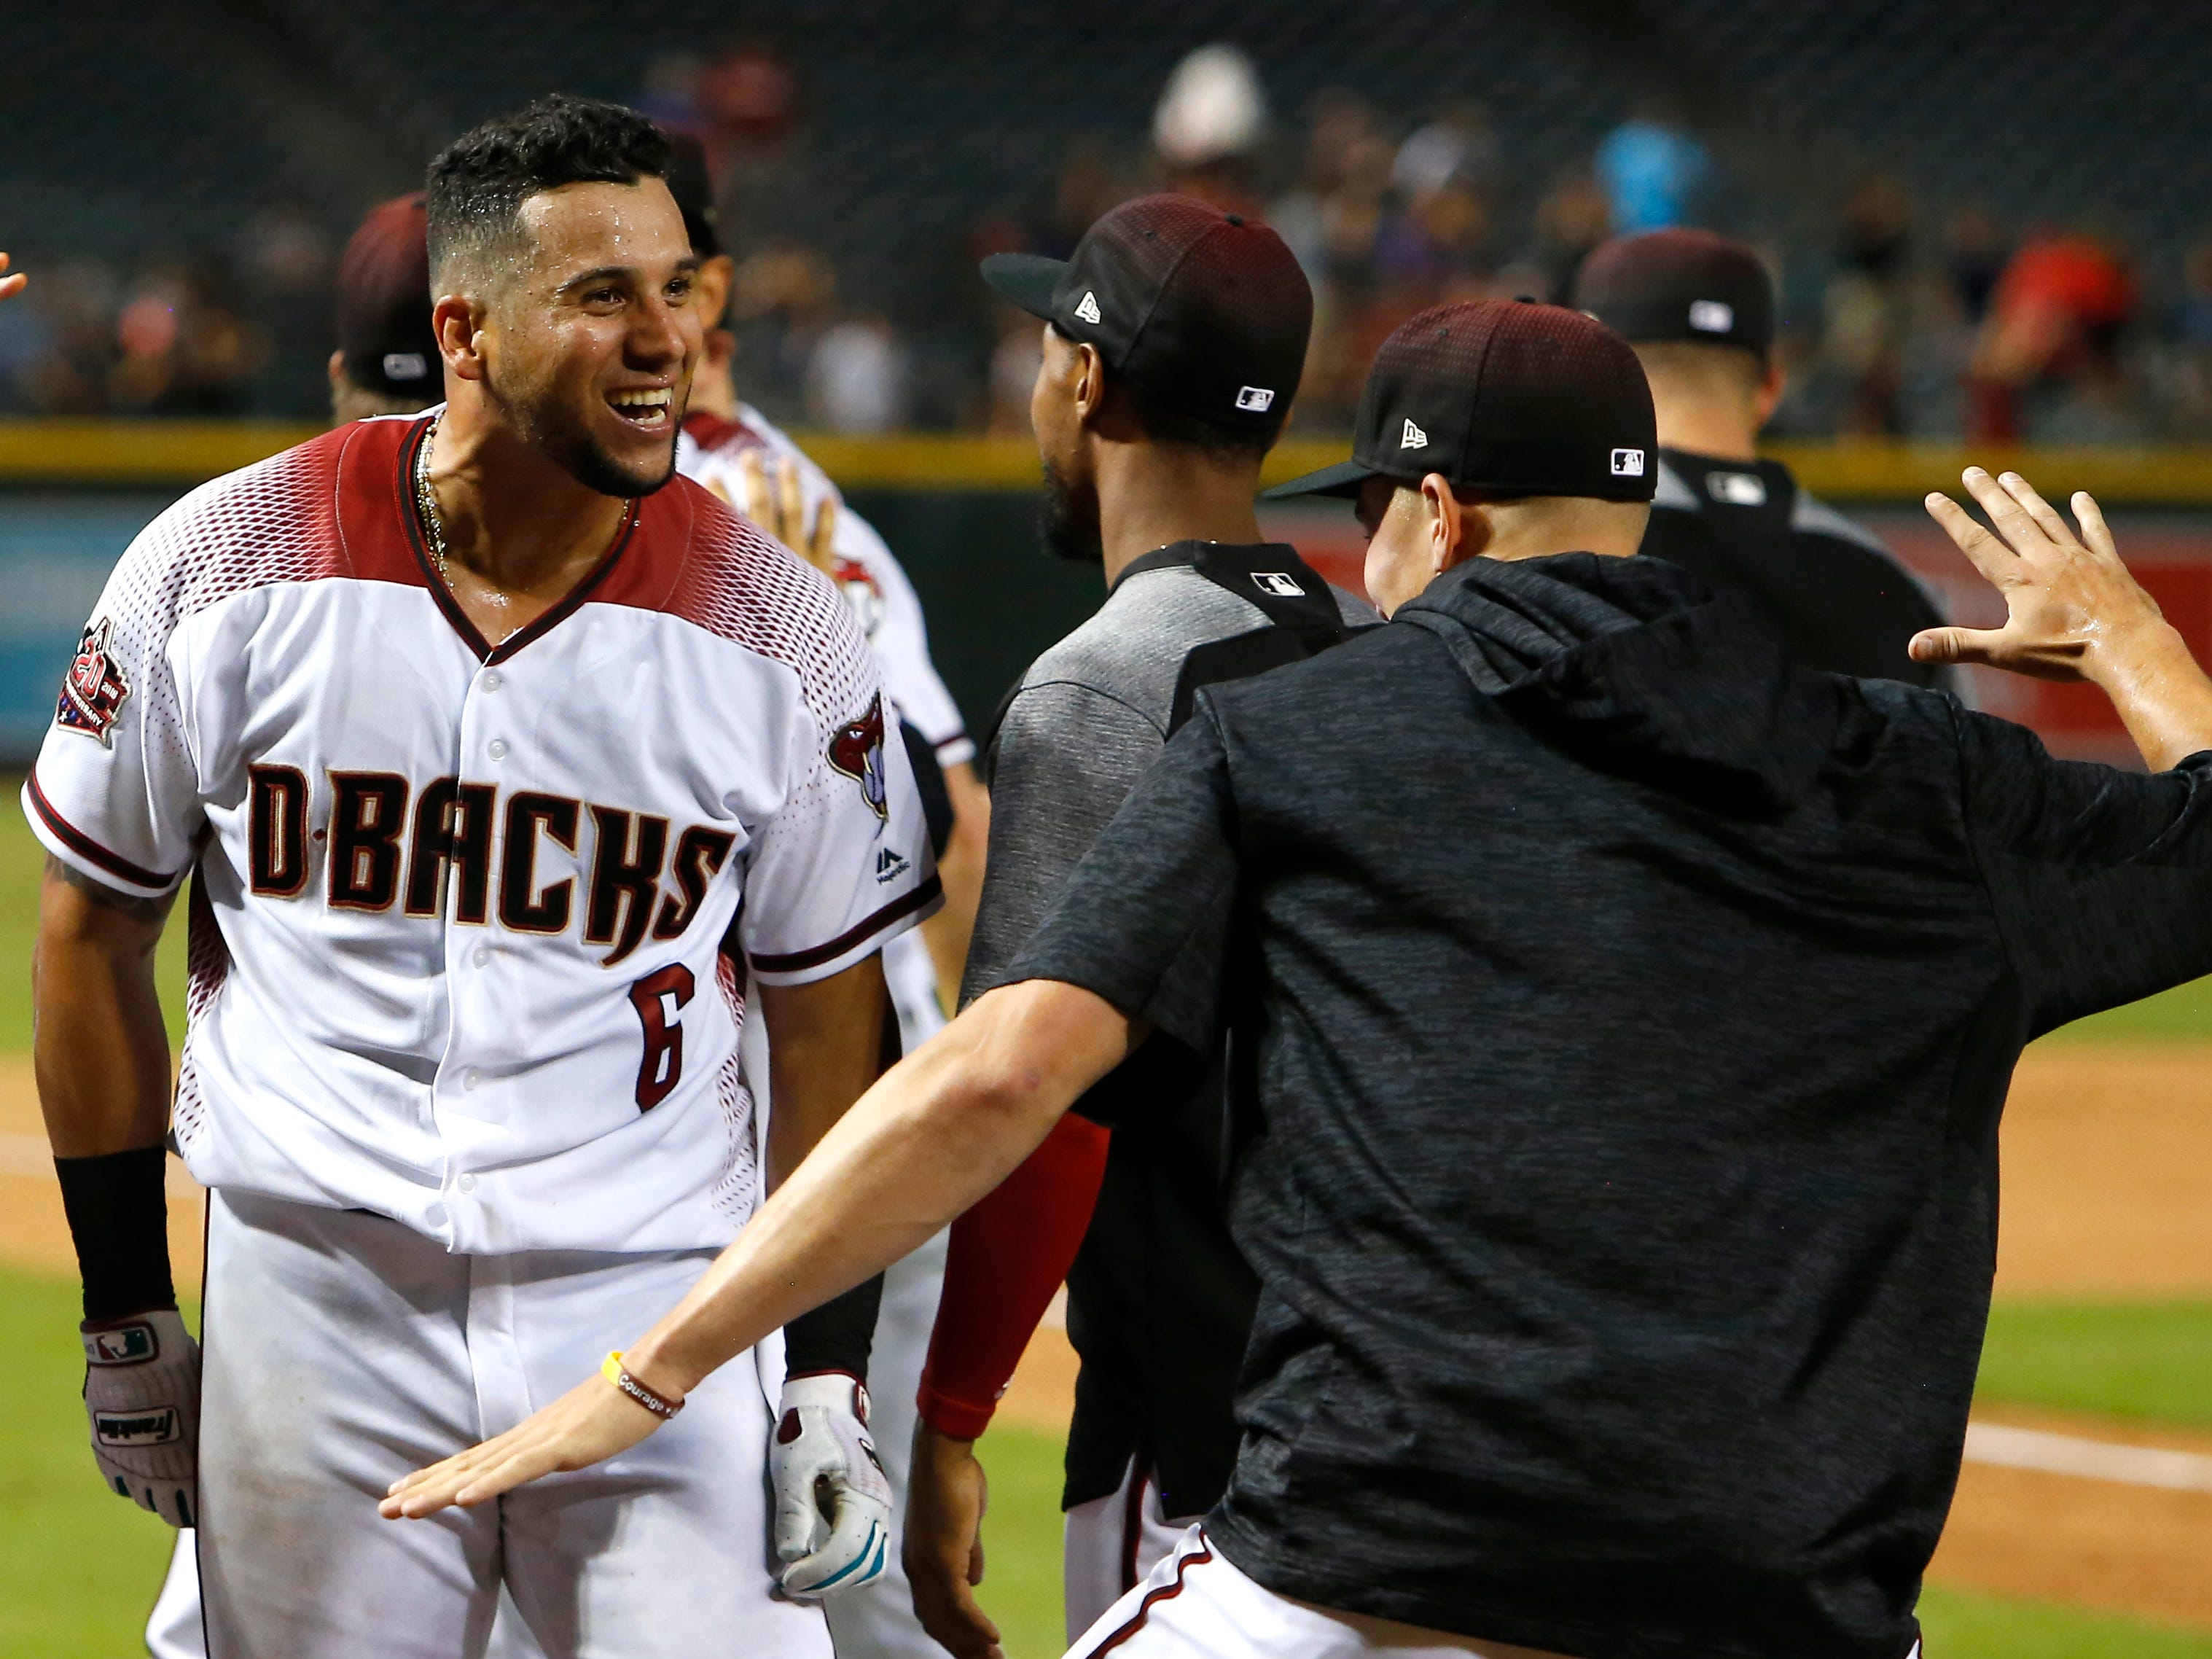 Arizona Diamondbacks right fielder David Peralta (6) in the 13th inning during a baseball game against the Philadelphia Phillies, Monday, Aug. 6, 2018, in Phoenix. (AP Photo/Rick Scuteri)